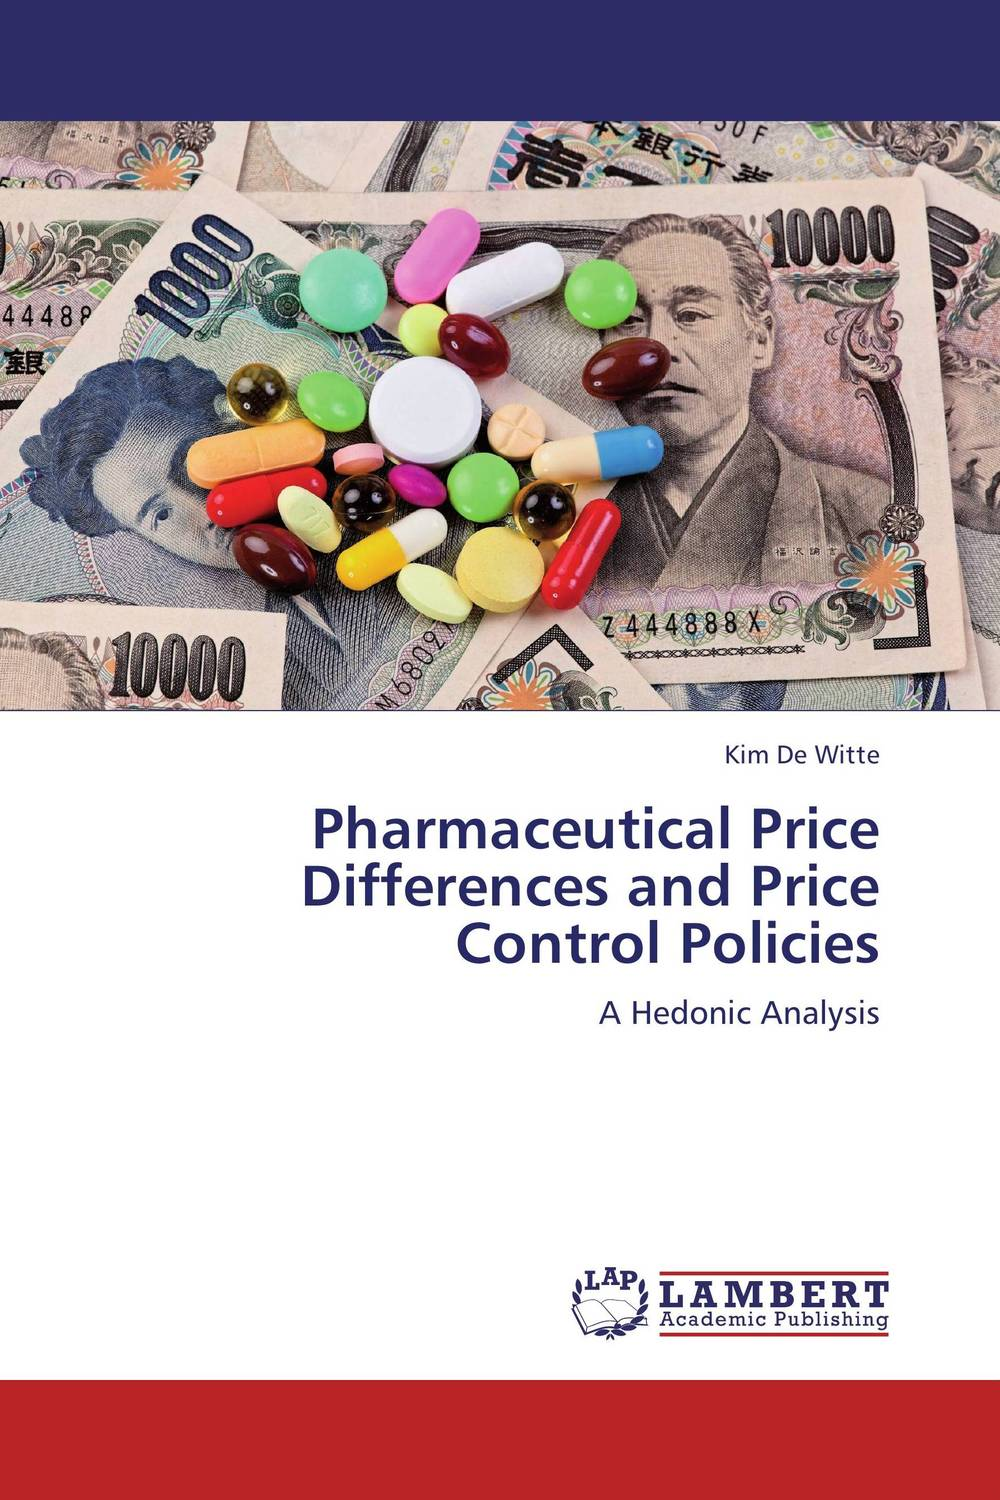 Pharmaceutical Price Differences and Price Control Policies